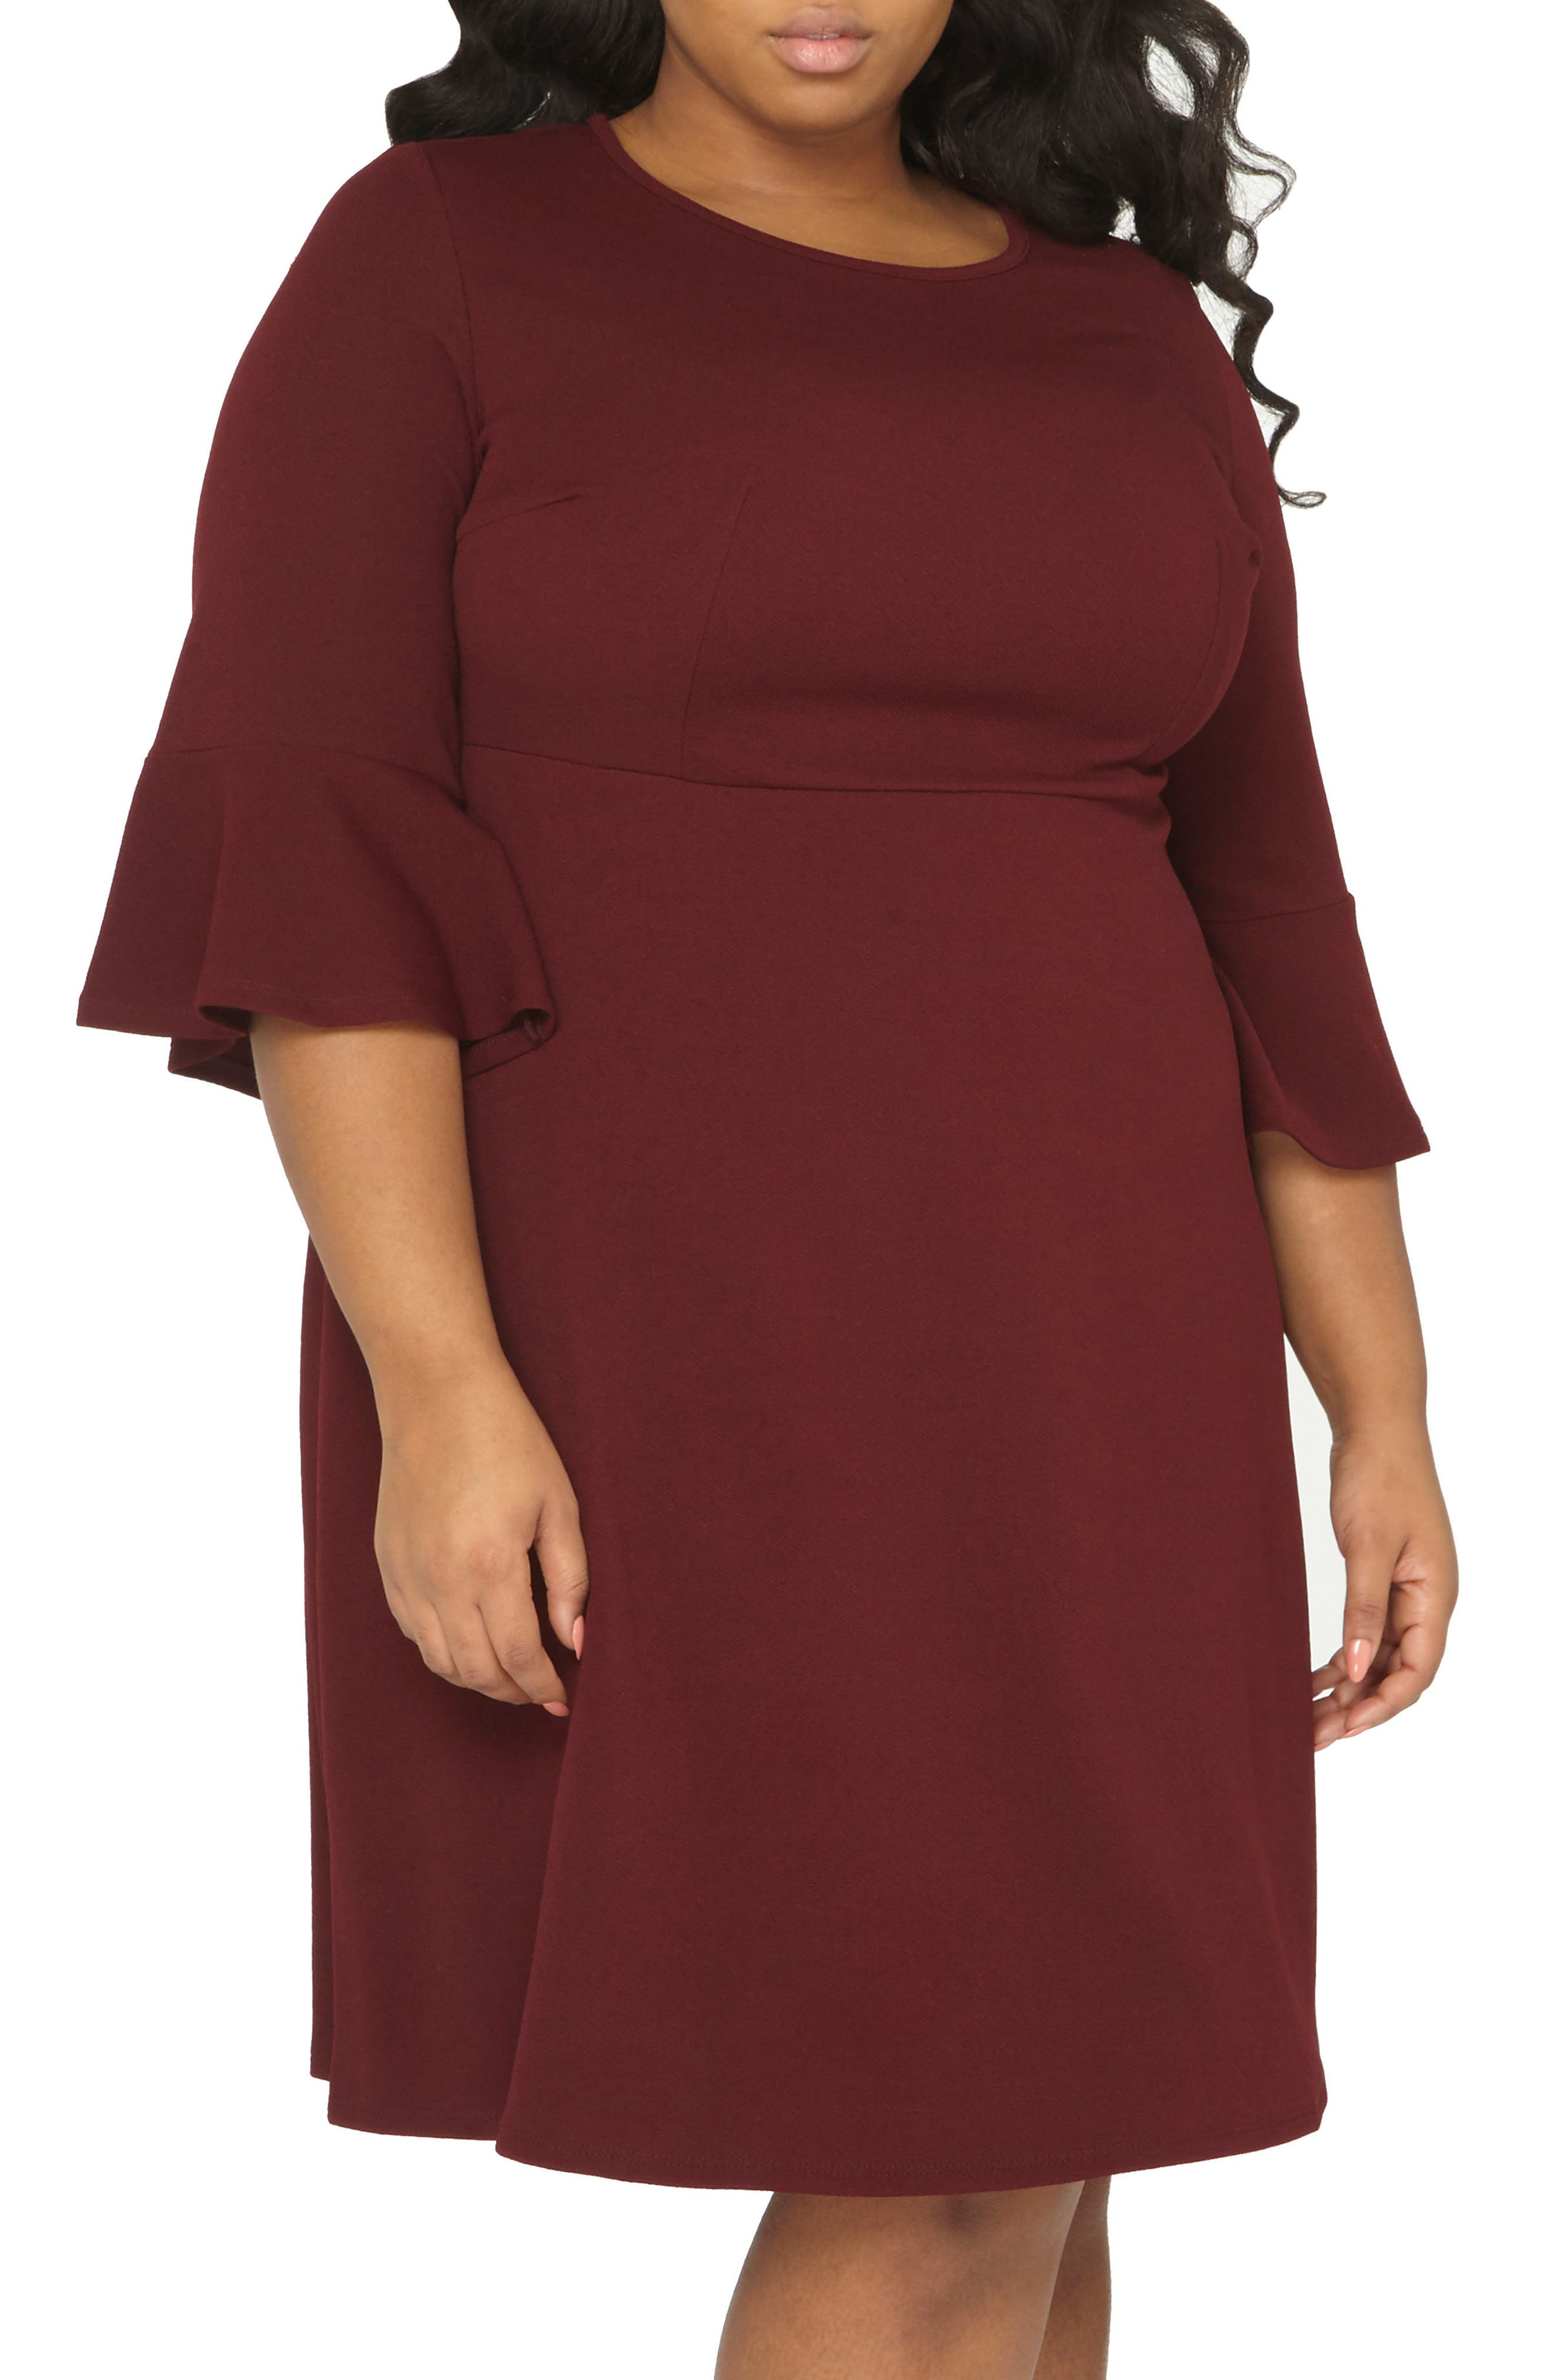 Main Image - Dorothy Perkins Ruffle Sleeve Fitted Dress (Plus Size)